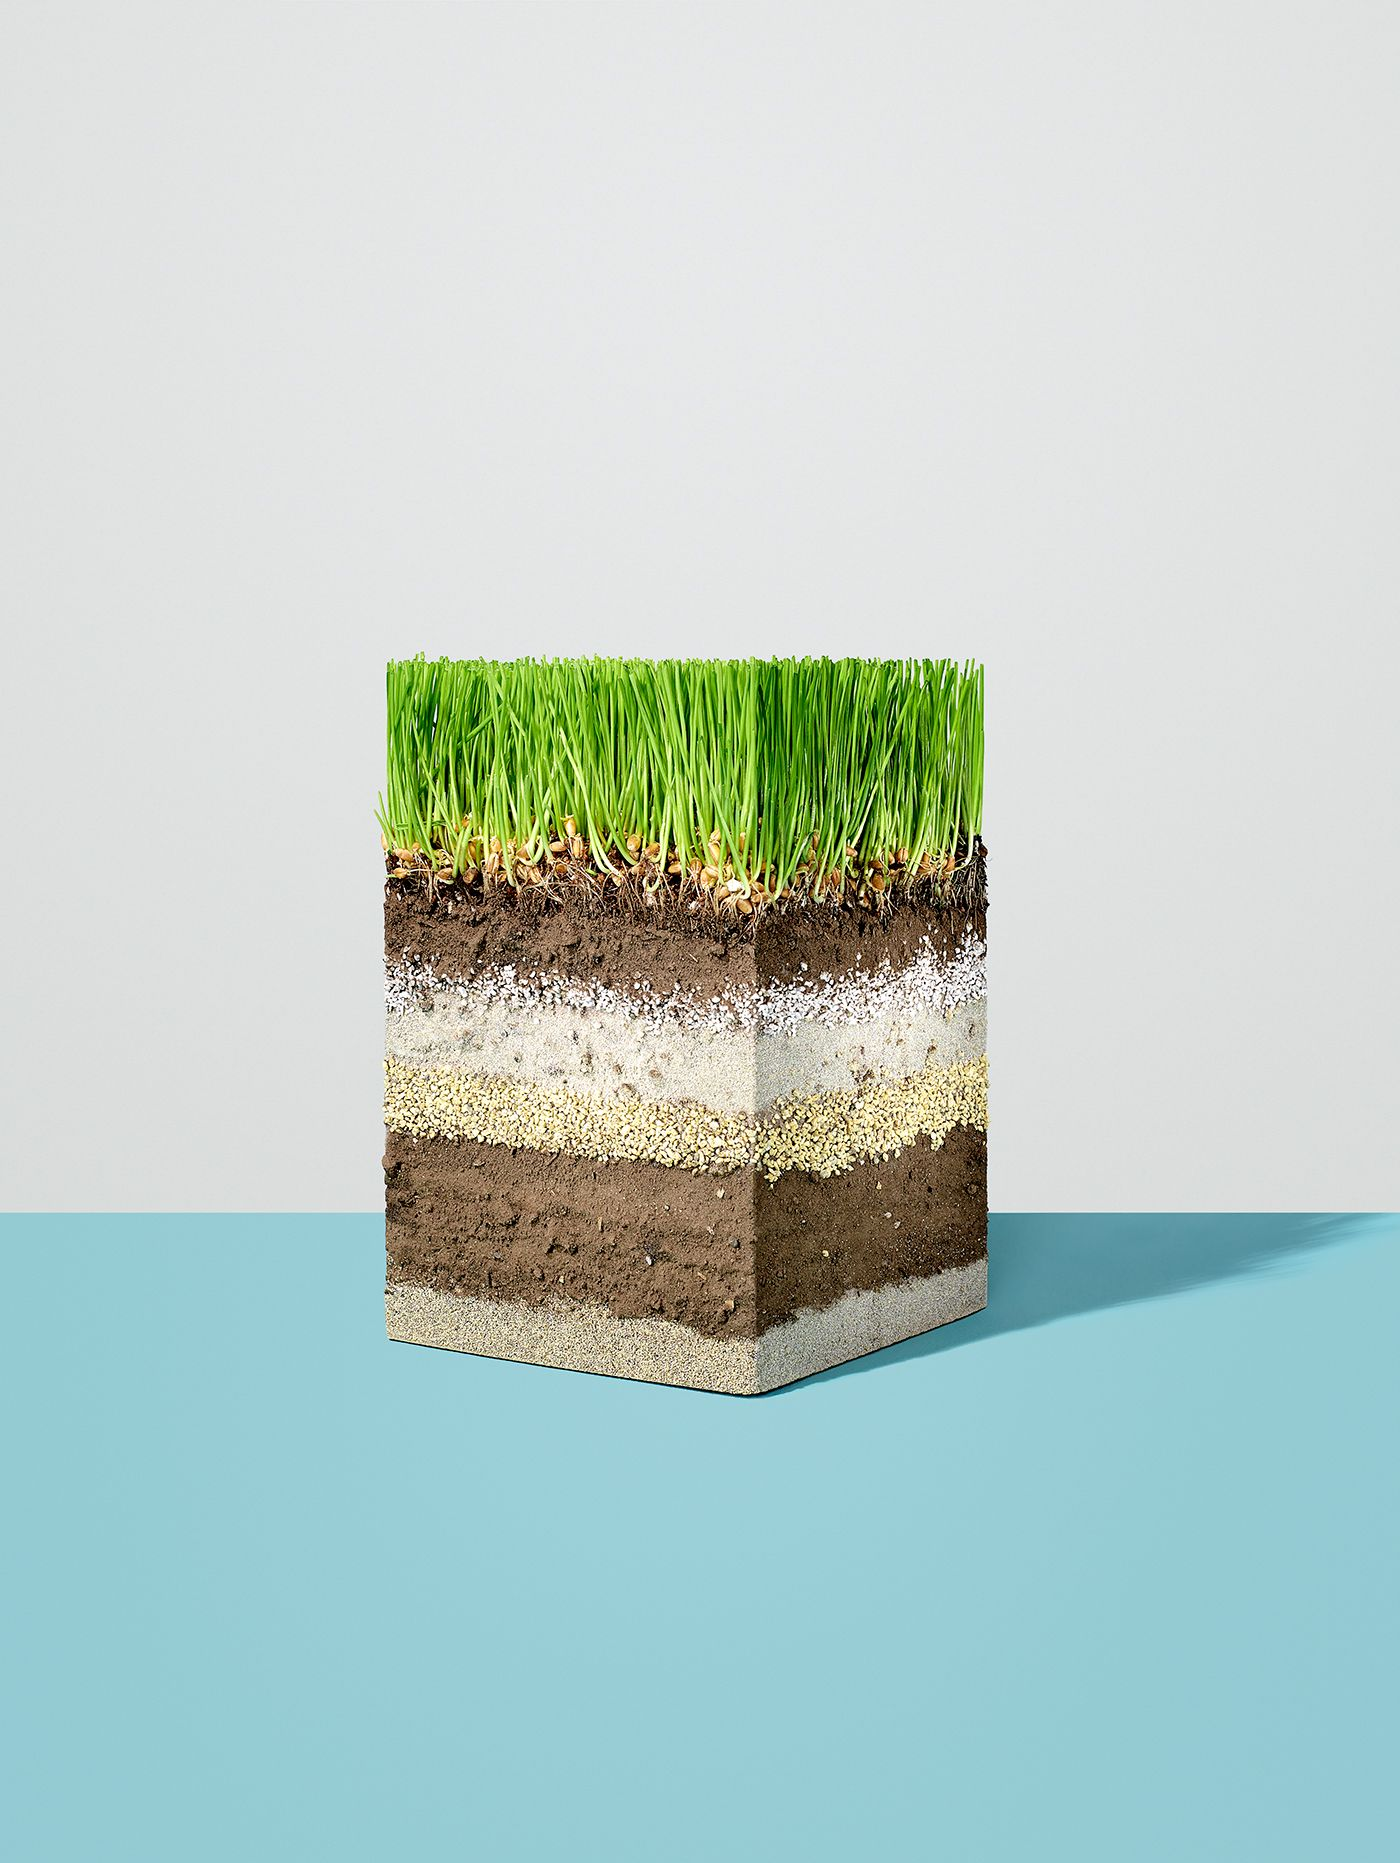 https://tickertapecdn.tdameritrade.com/assets/images/pages/md/Crosscut of soil and minerals with a patch of grass growing on it